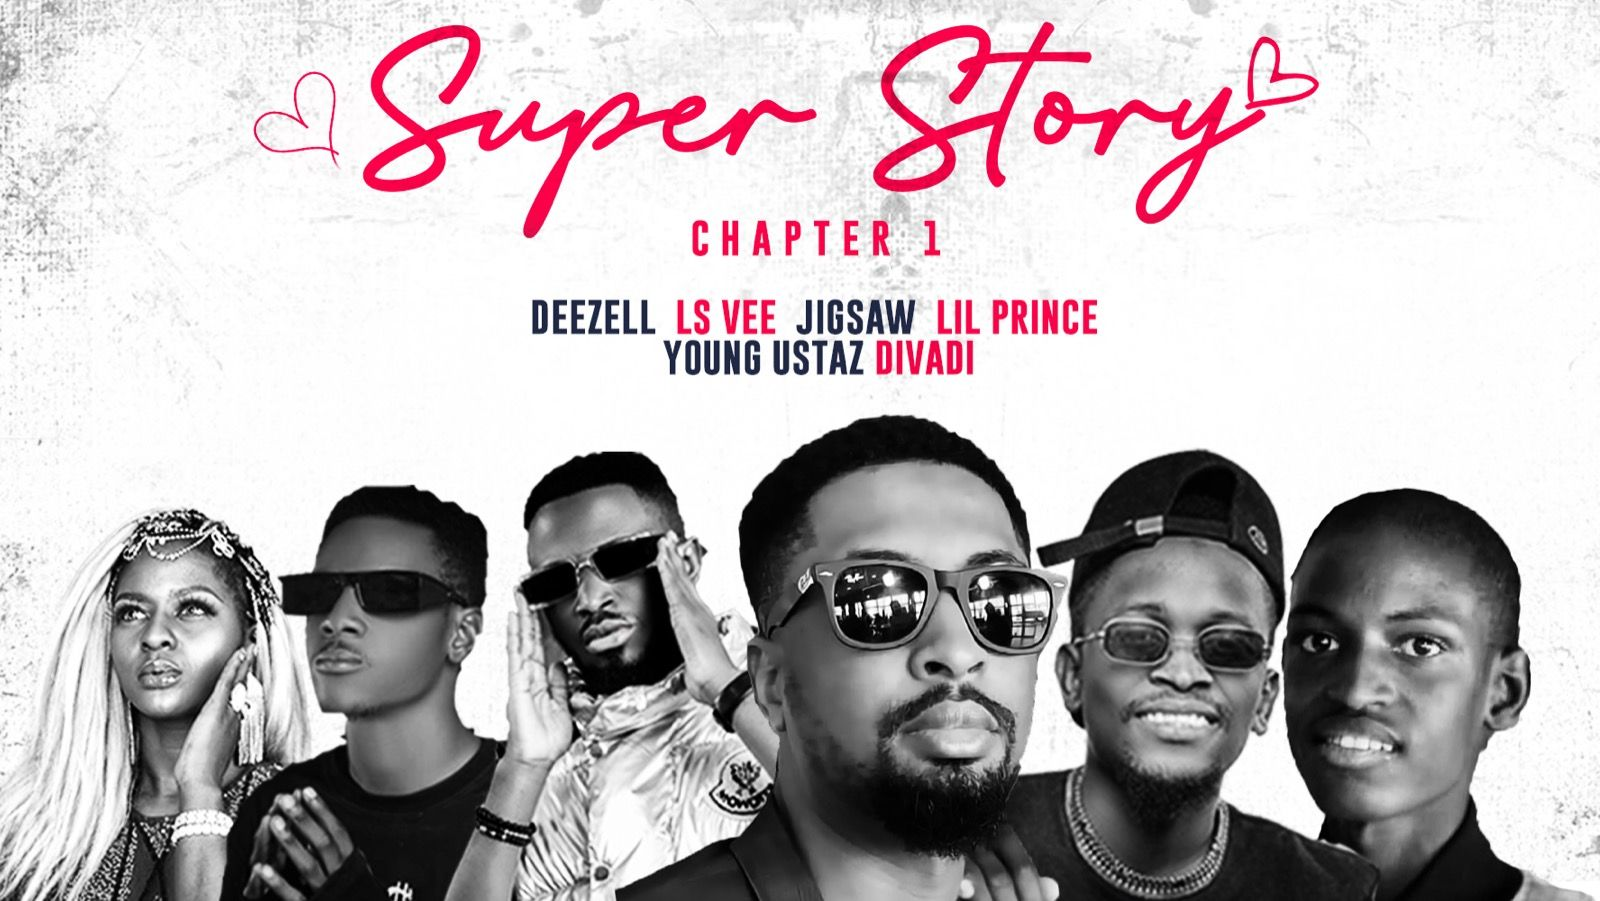 Deezell  Super Story Chapter 1 Ft. Jigsaw, Lsvee, Divadiii, Lil prince, Young Ustaz mp3 download